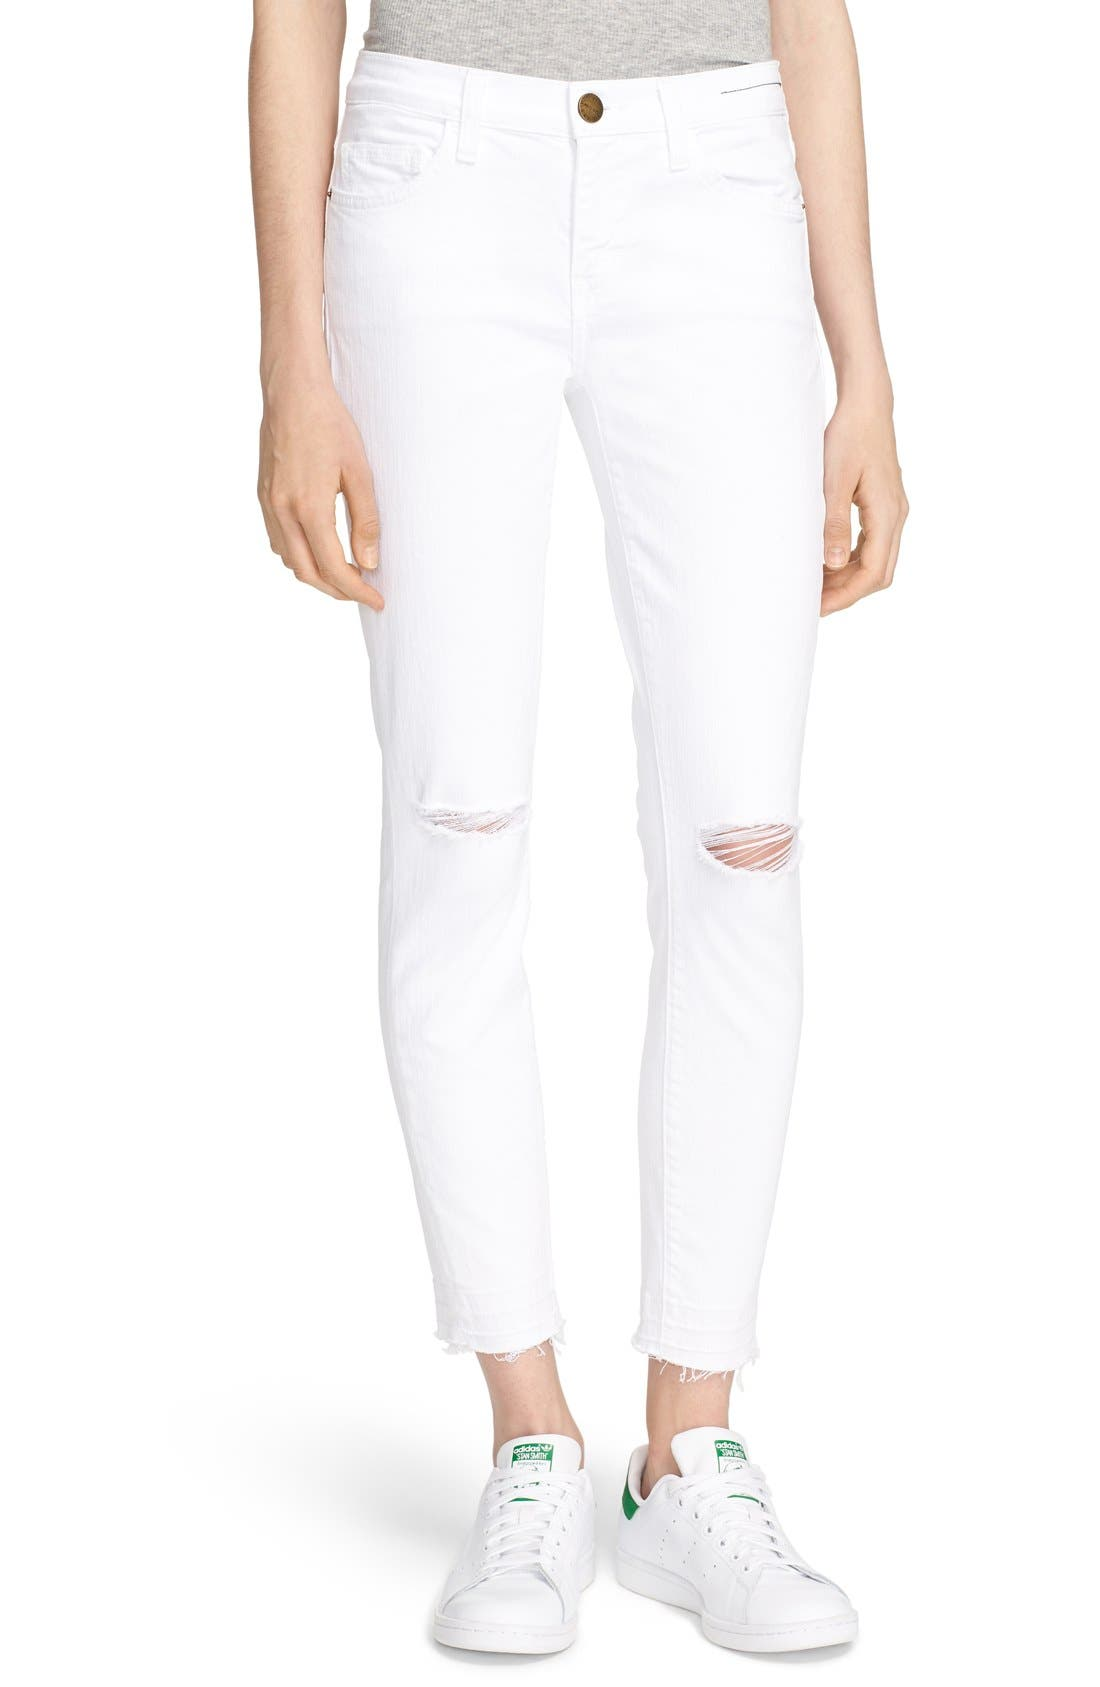 Current/Elliott 'The Stiletto' Jeans